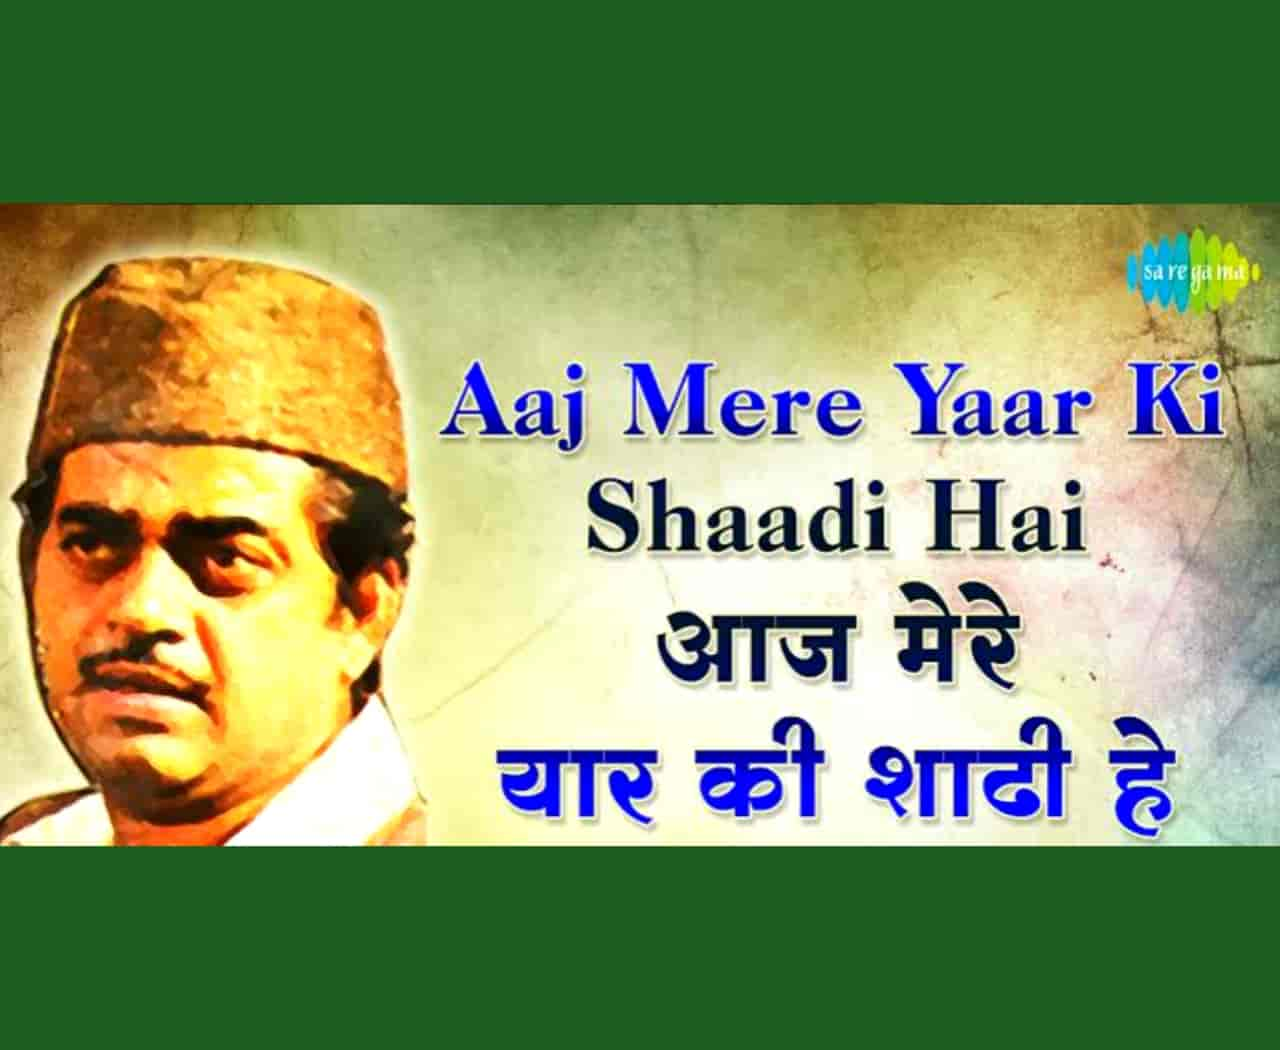 Aaj mere yaar ki shadi hai Hindi Song Lyrics, Sung By Mohammad Rafi